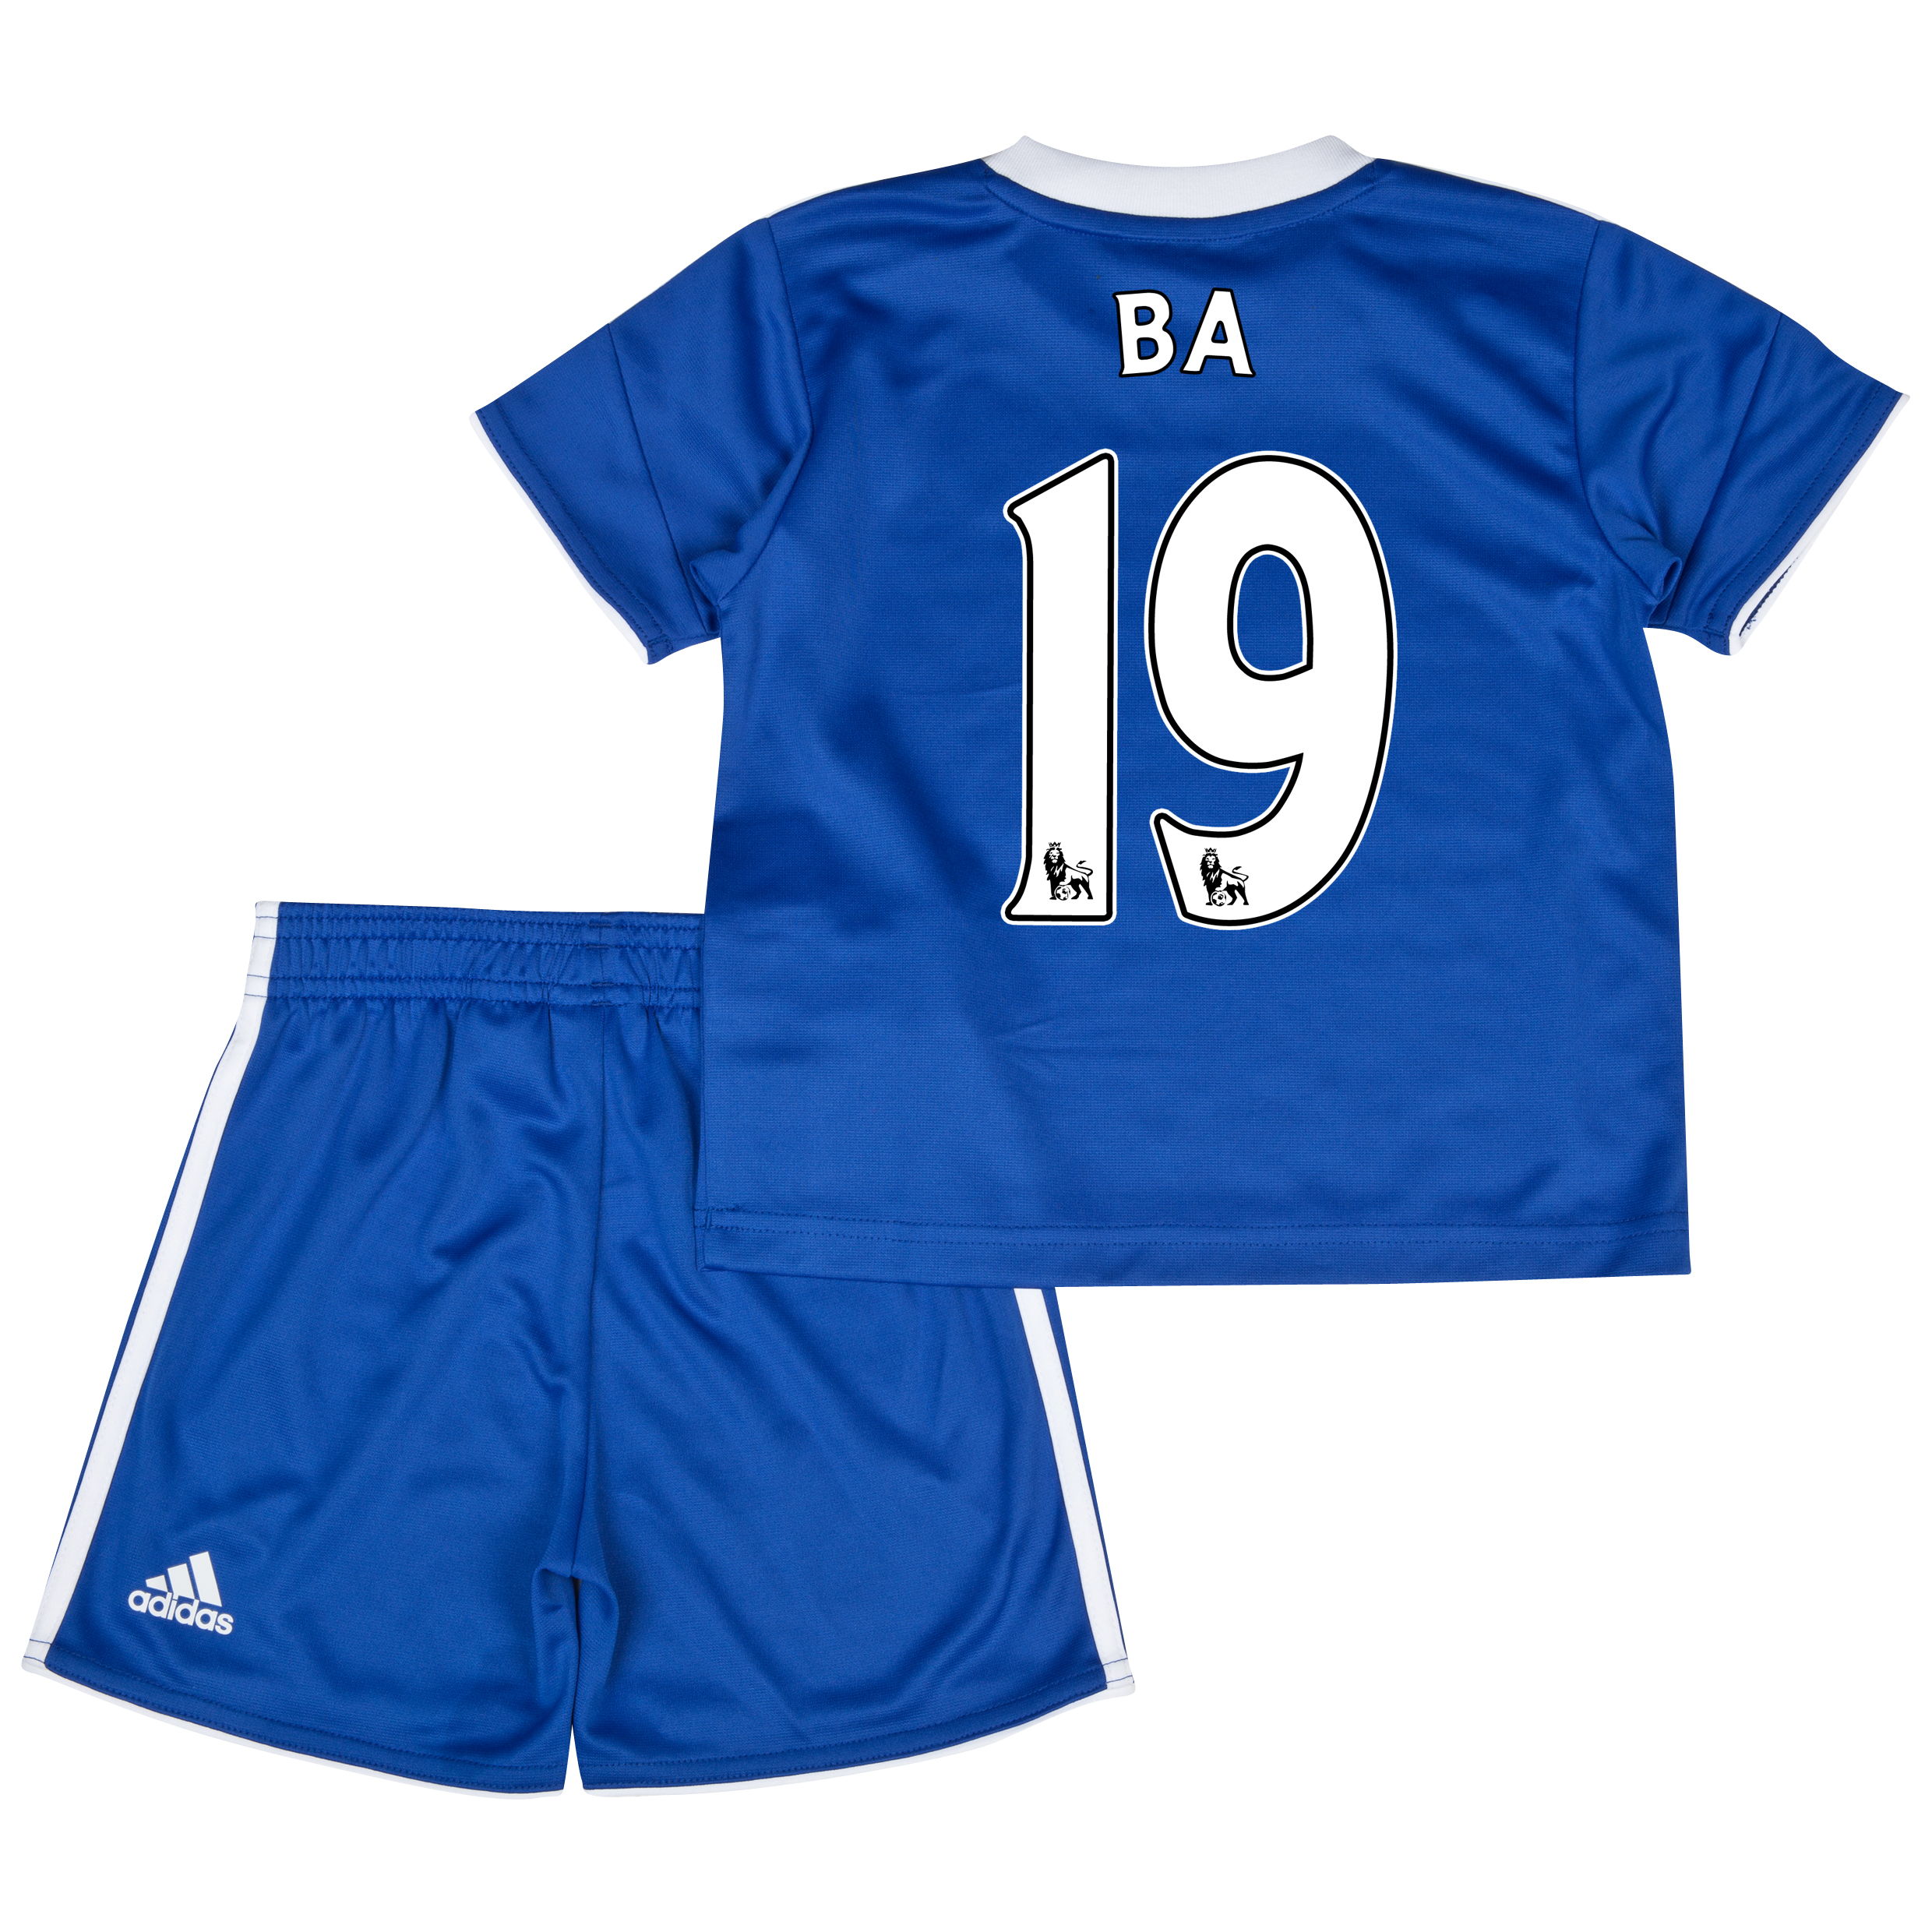 Chelsea Home Mini Kit 2013/14 with Ba 19 printing